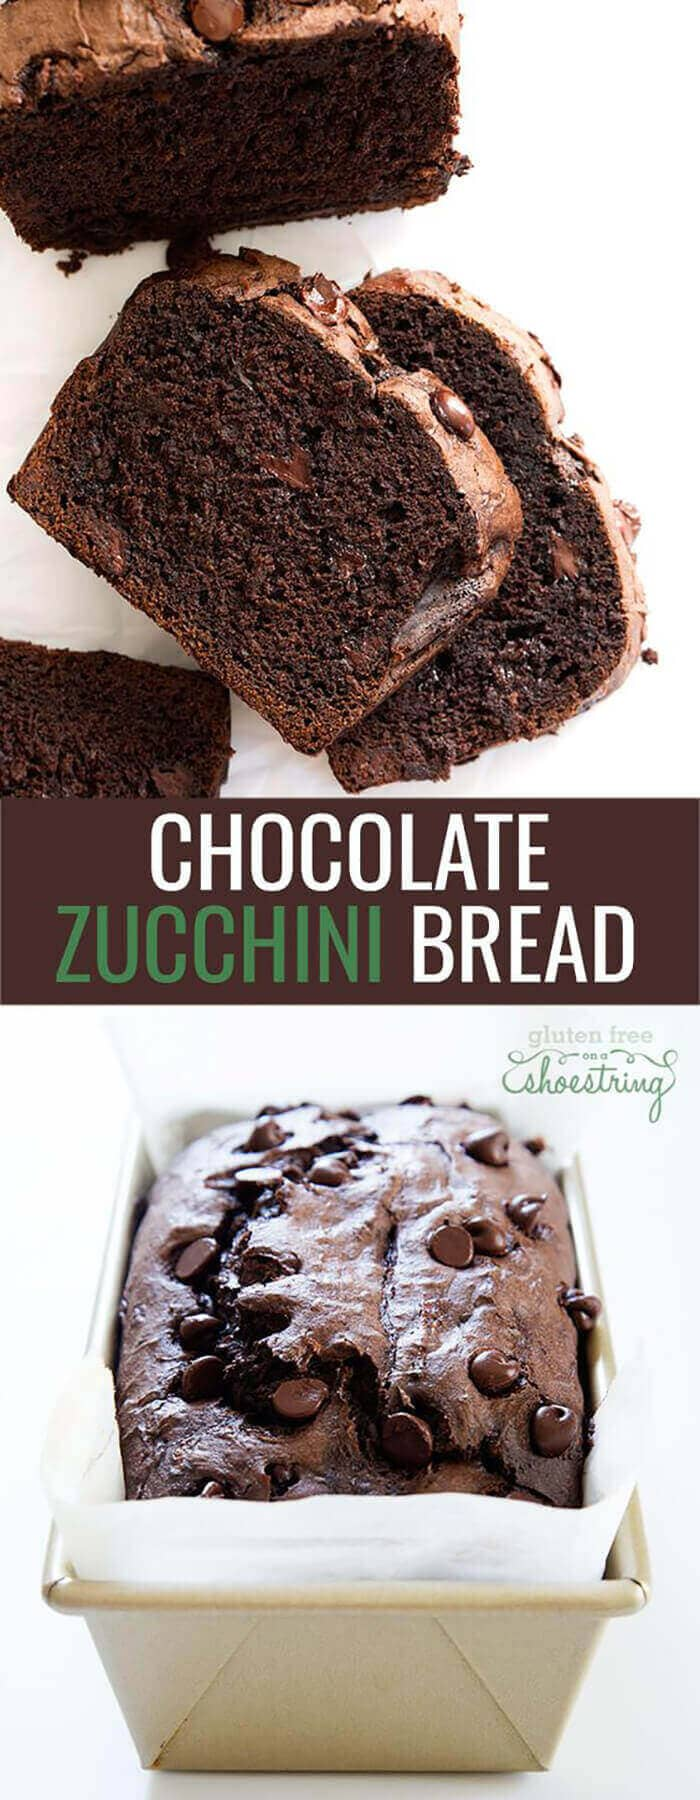 Double Chocolate Gluten-Free Zucchini Bread